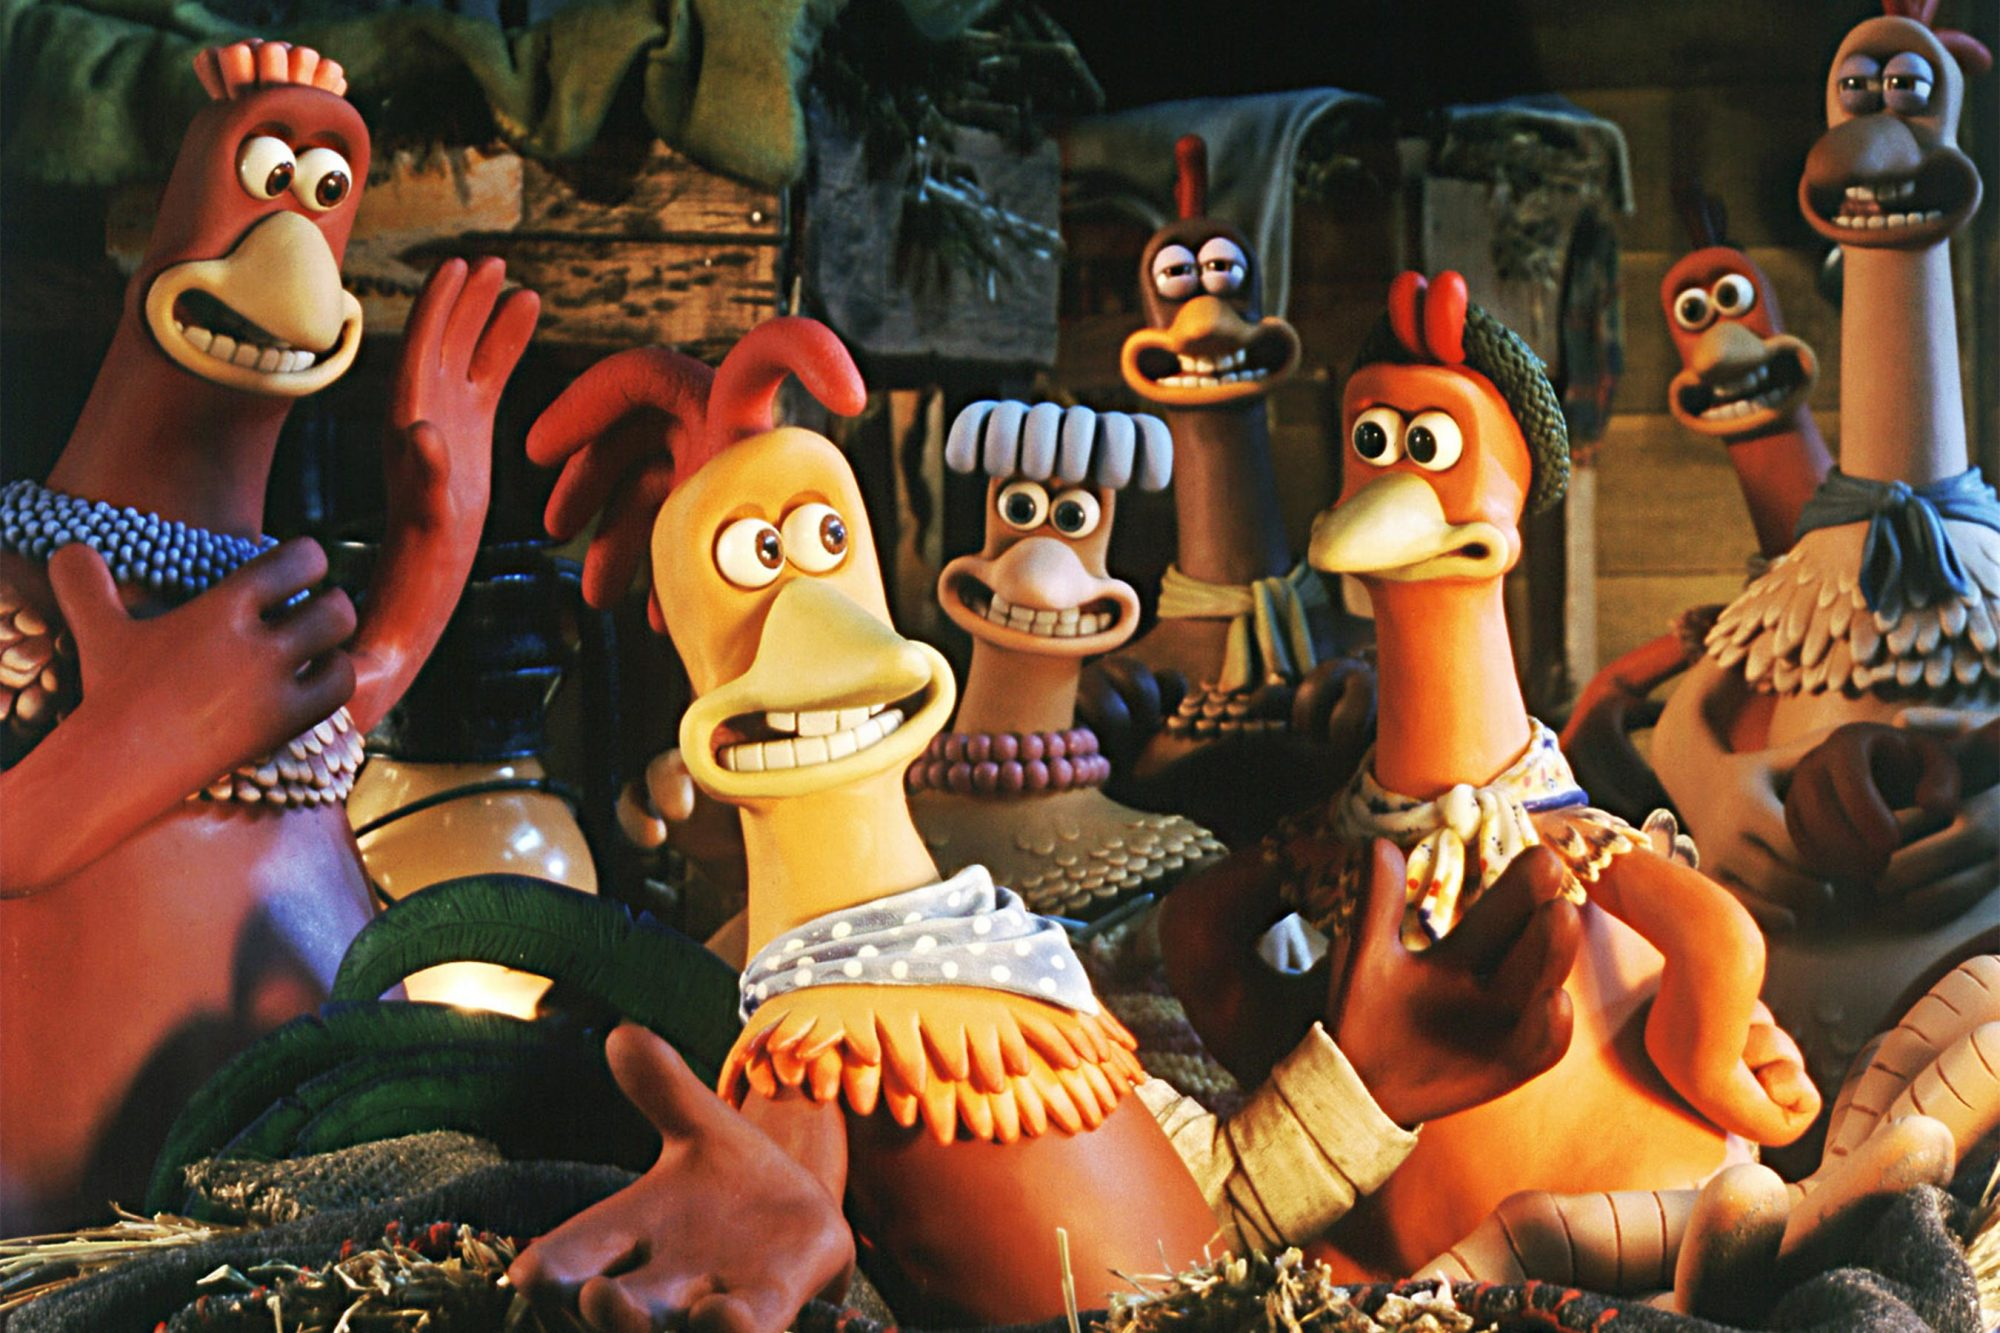 CHICKEN RUN, 2000, (l to r) Bunty (Imelda Staunton), Rocky (Mel Gibson), Babs (Jane Horrocks), Ginge